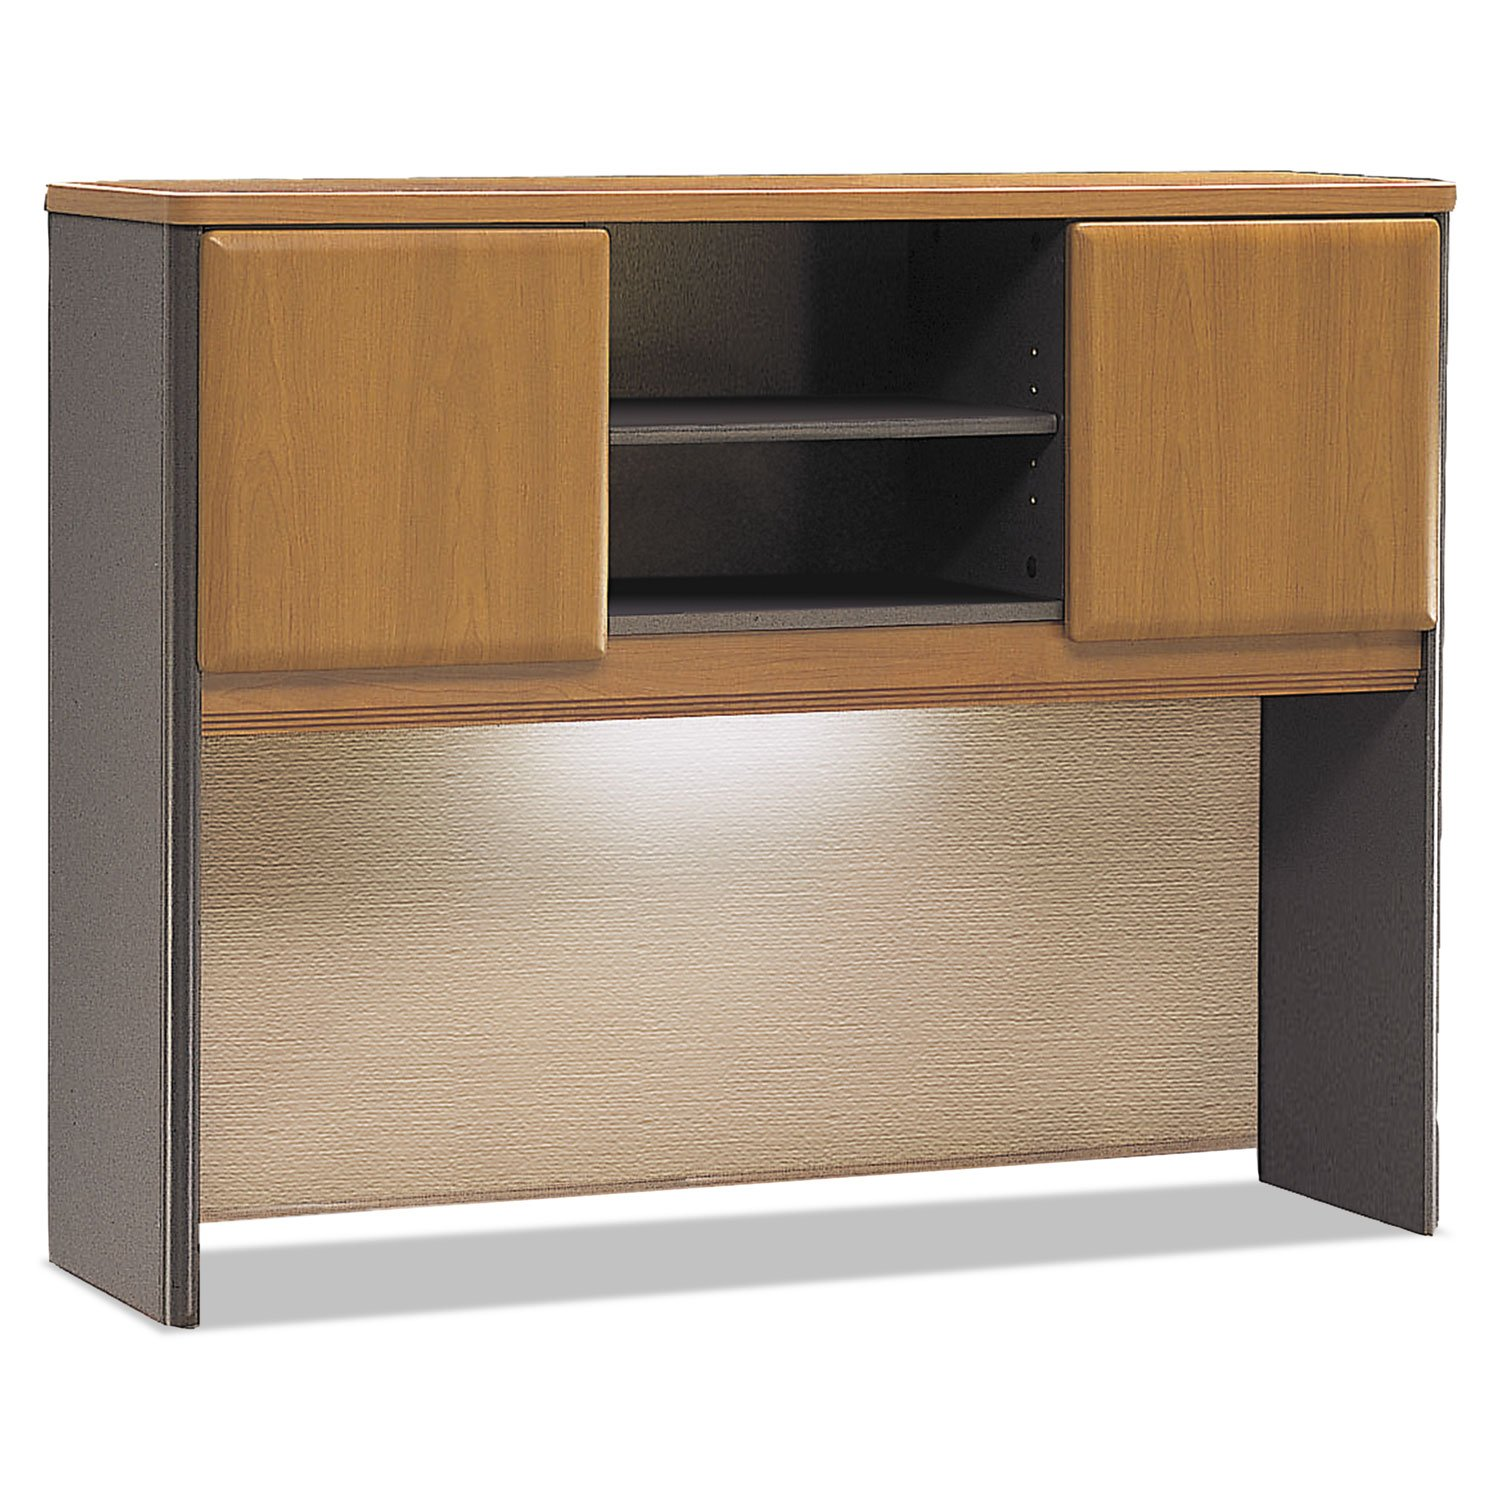 Bbf Series A 48 Hutch - Slate